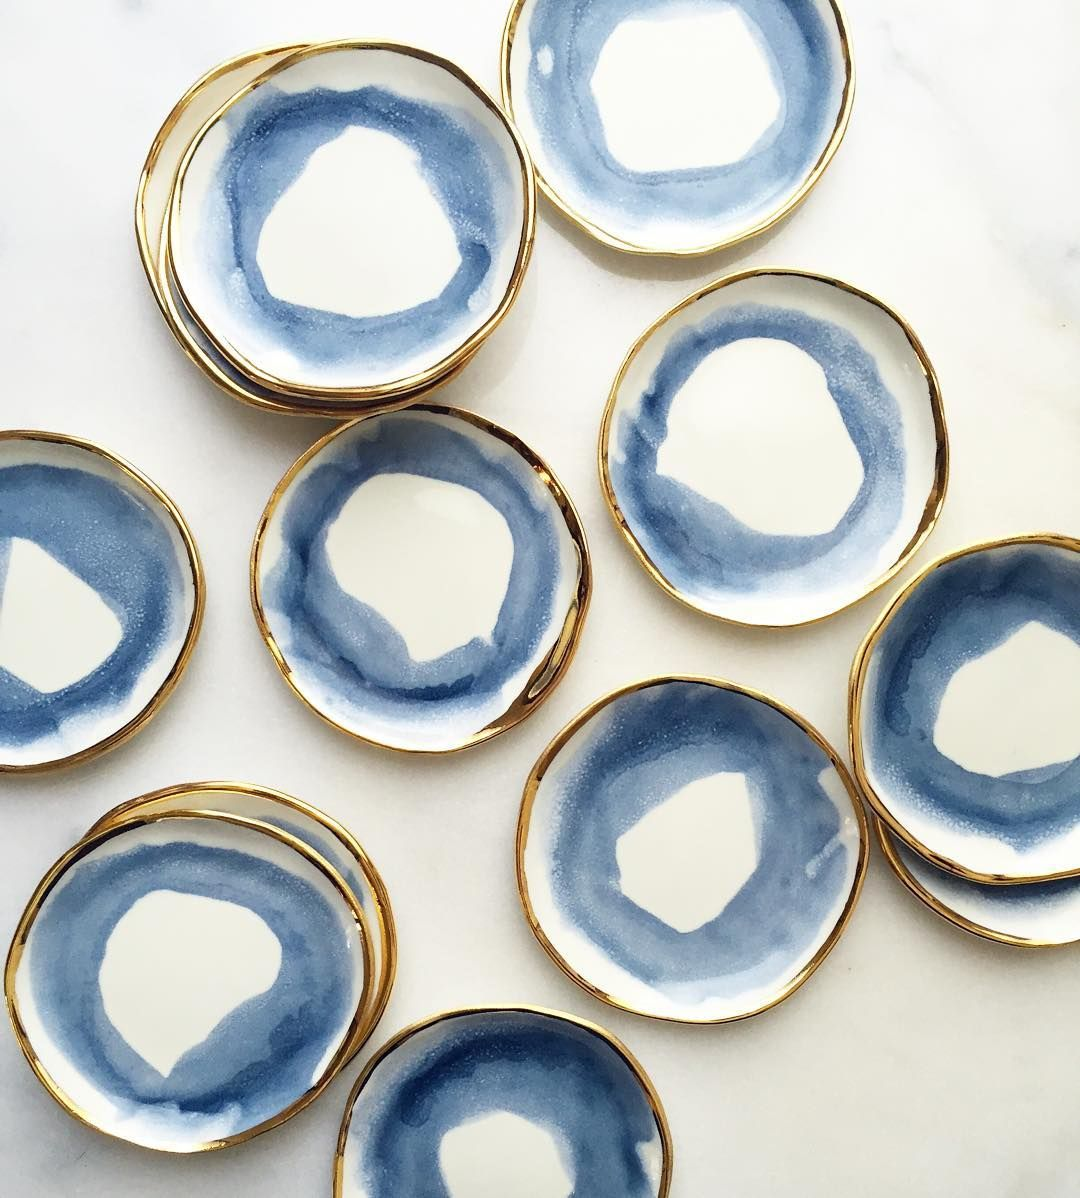 The glaze melted *perfectly* on these Aegean Swirl Ring Dishes! The second restock of #doublerestockweek just went live in the shop (link in profile). Happy shopping and happy almost-weekend!!